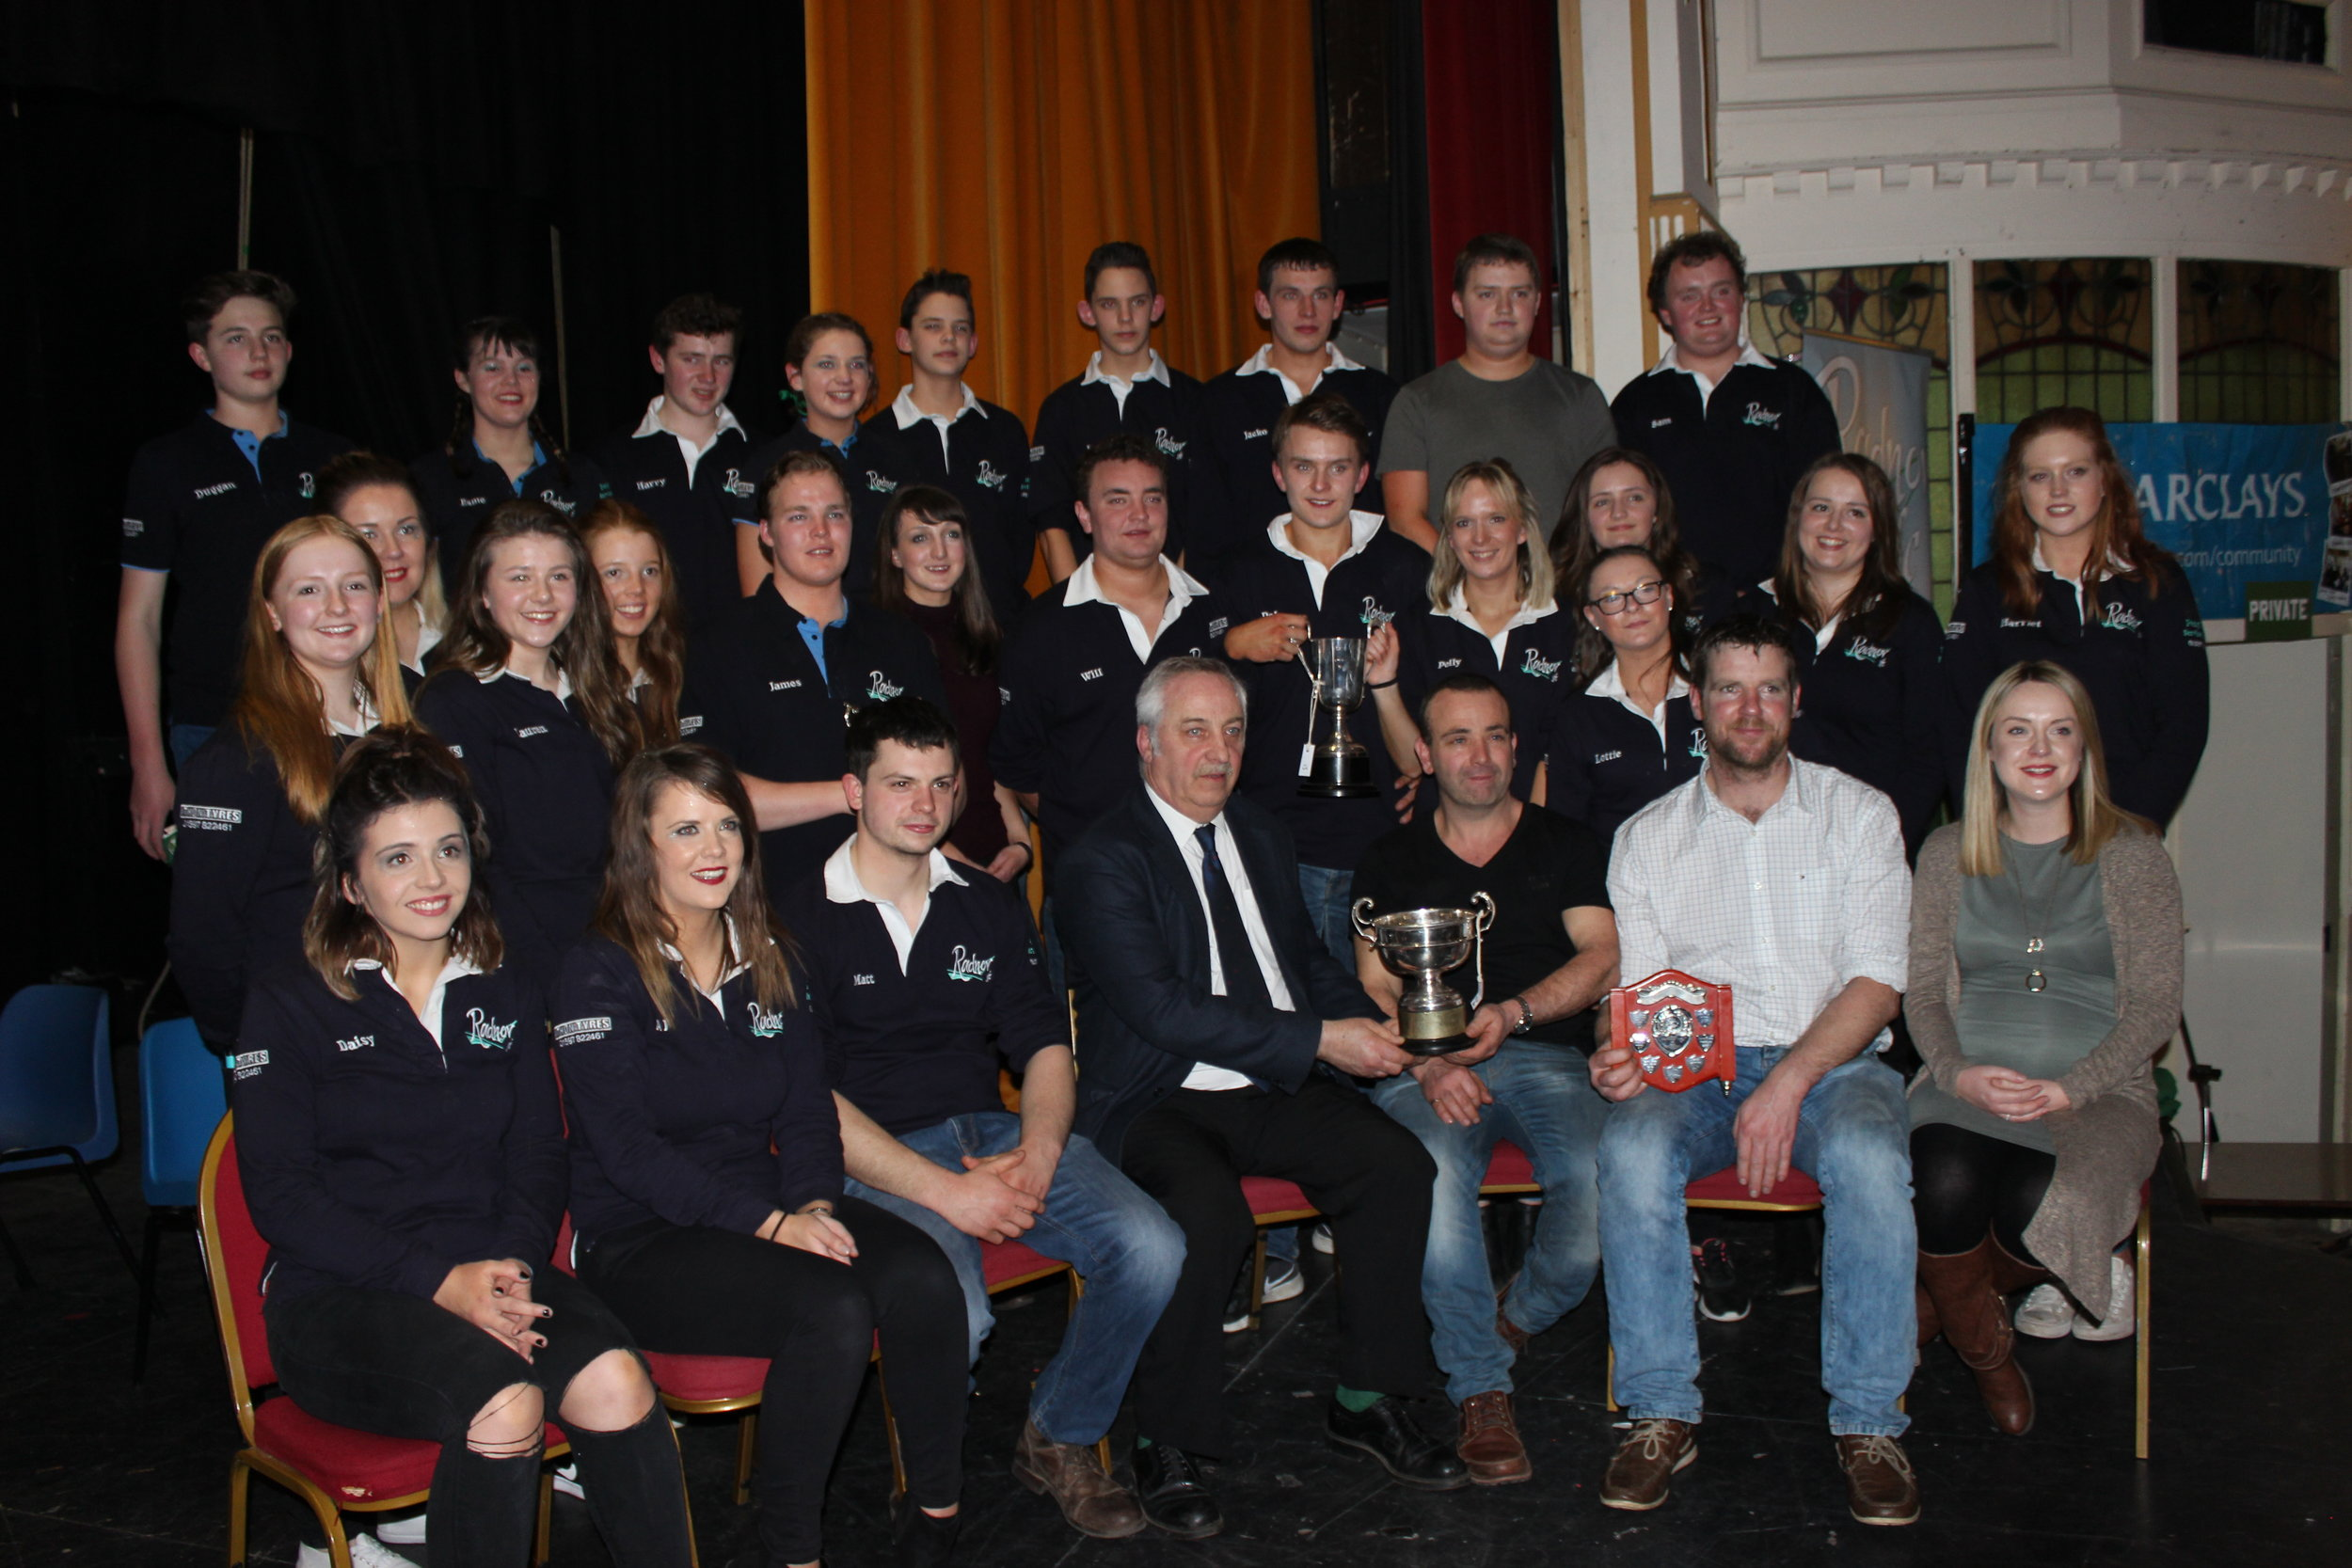 Penybont YFC - Winners of the Entertainment Competition